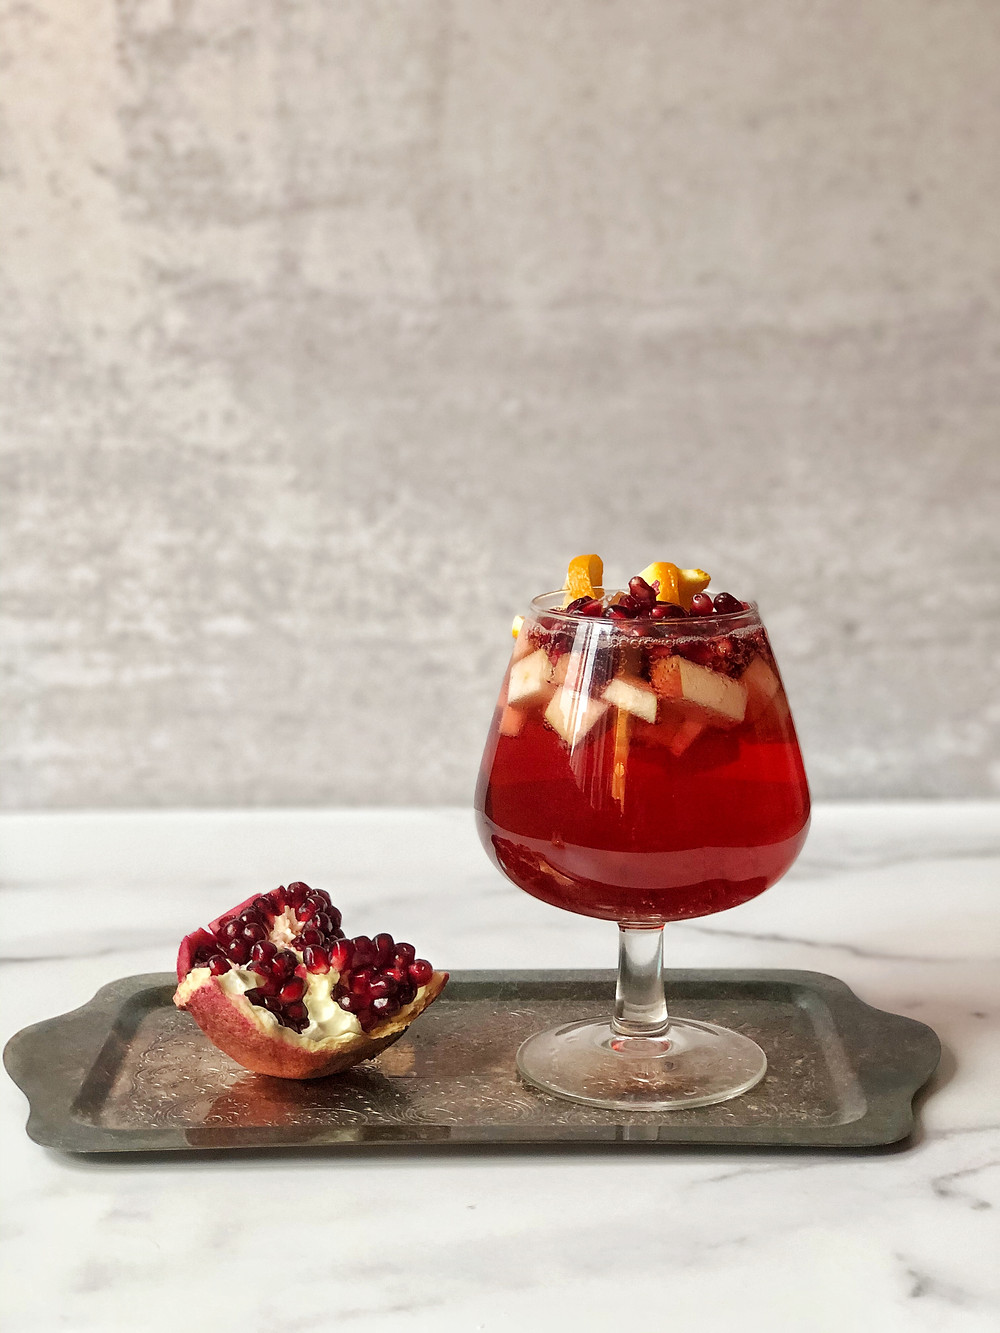 The Sanderson Sister Sangria is a beautiful, bright red, fall themed non-alcoholic sangria for all of your Halloween movie watching refreshment.